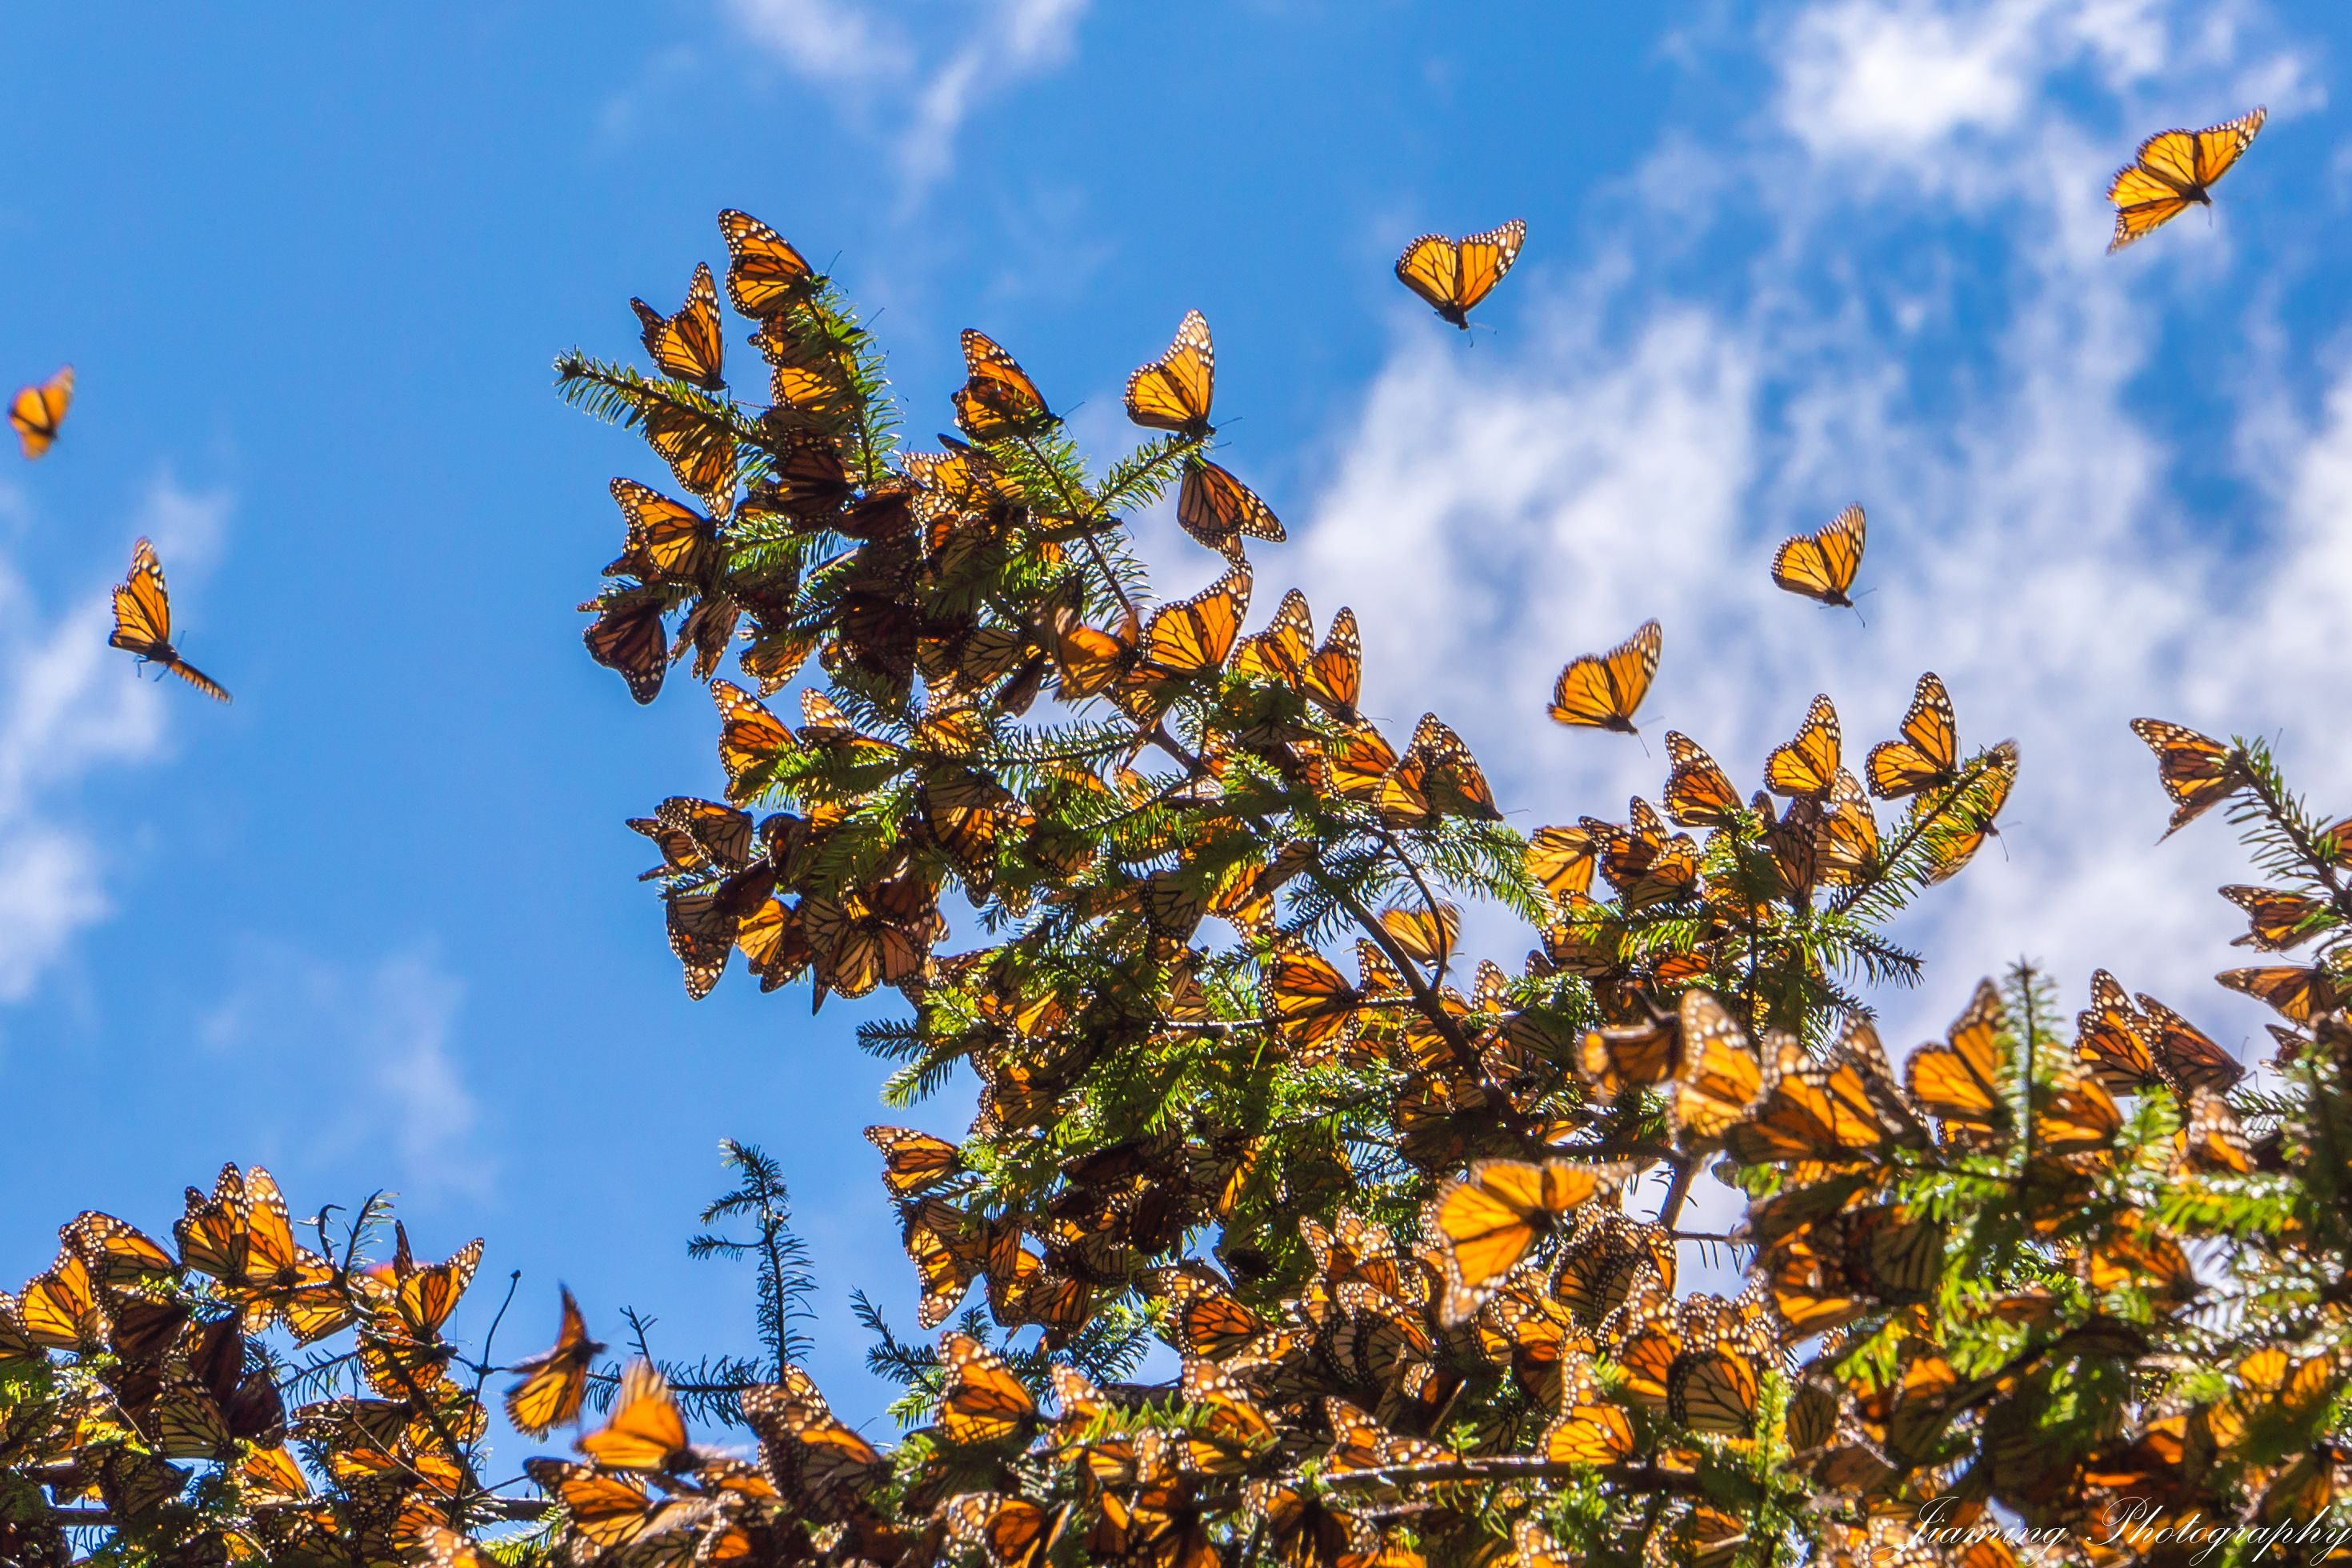 This $15 Plant From Amazon Will Turn Your Backyard Into a Monarch Butterfly Paradise